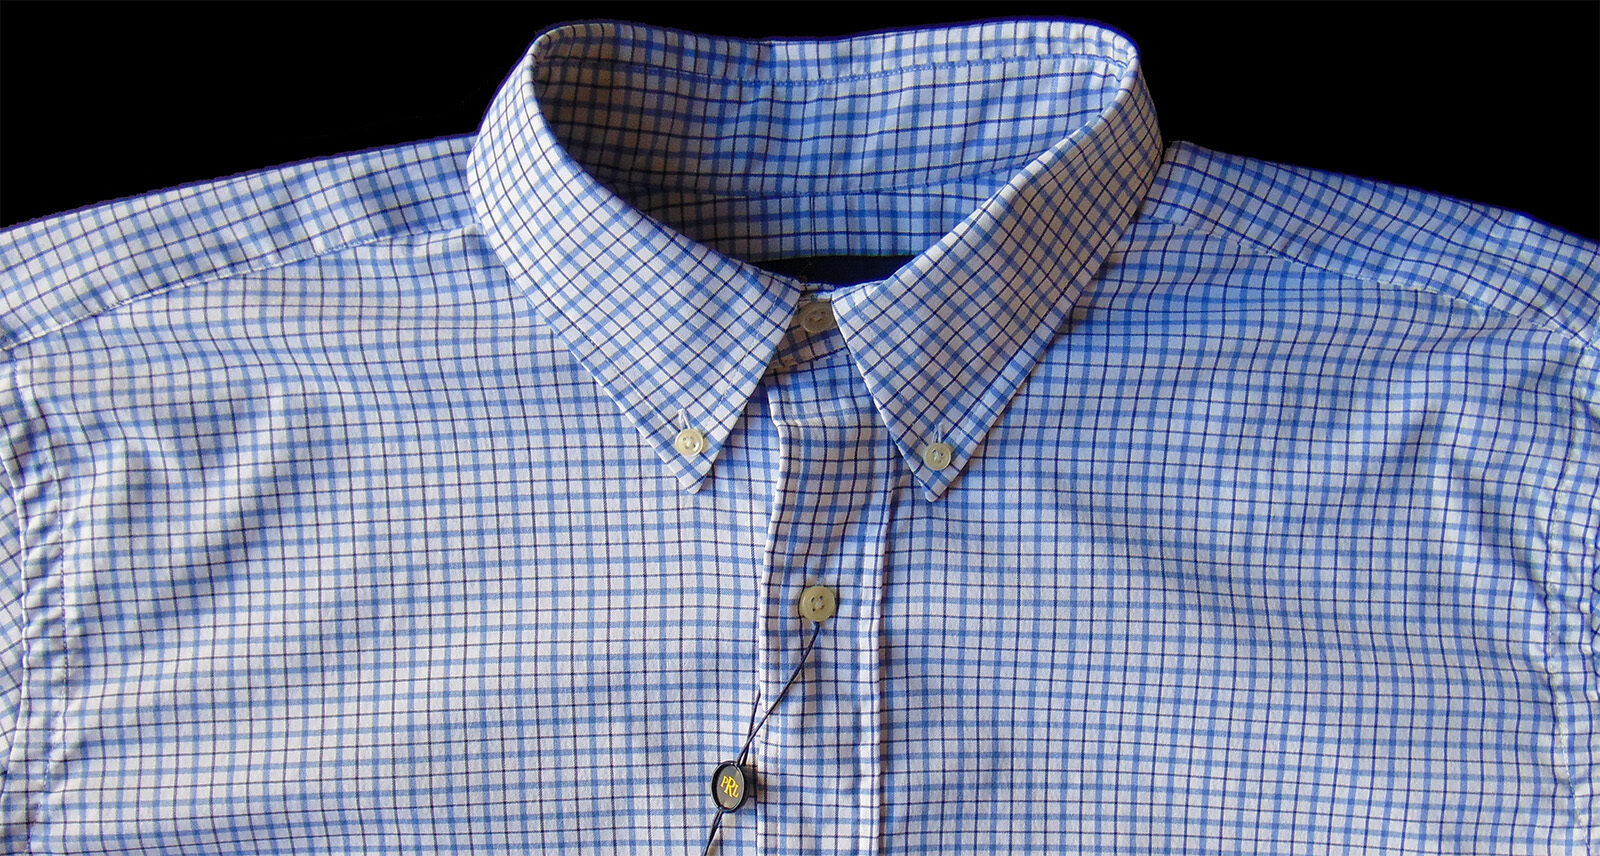 Men's RALPH LAUREN bluee White Plaid Shirt LT TALL Performance Fabric NWT NEW